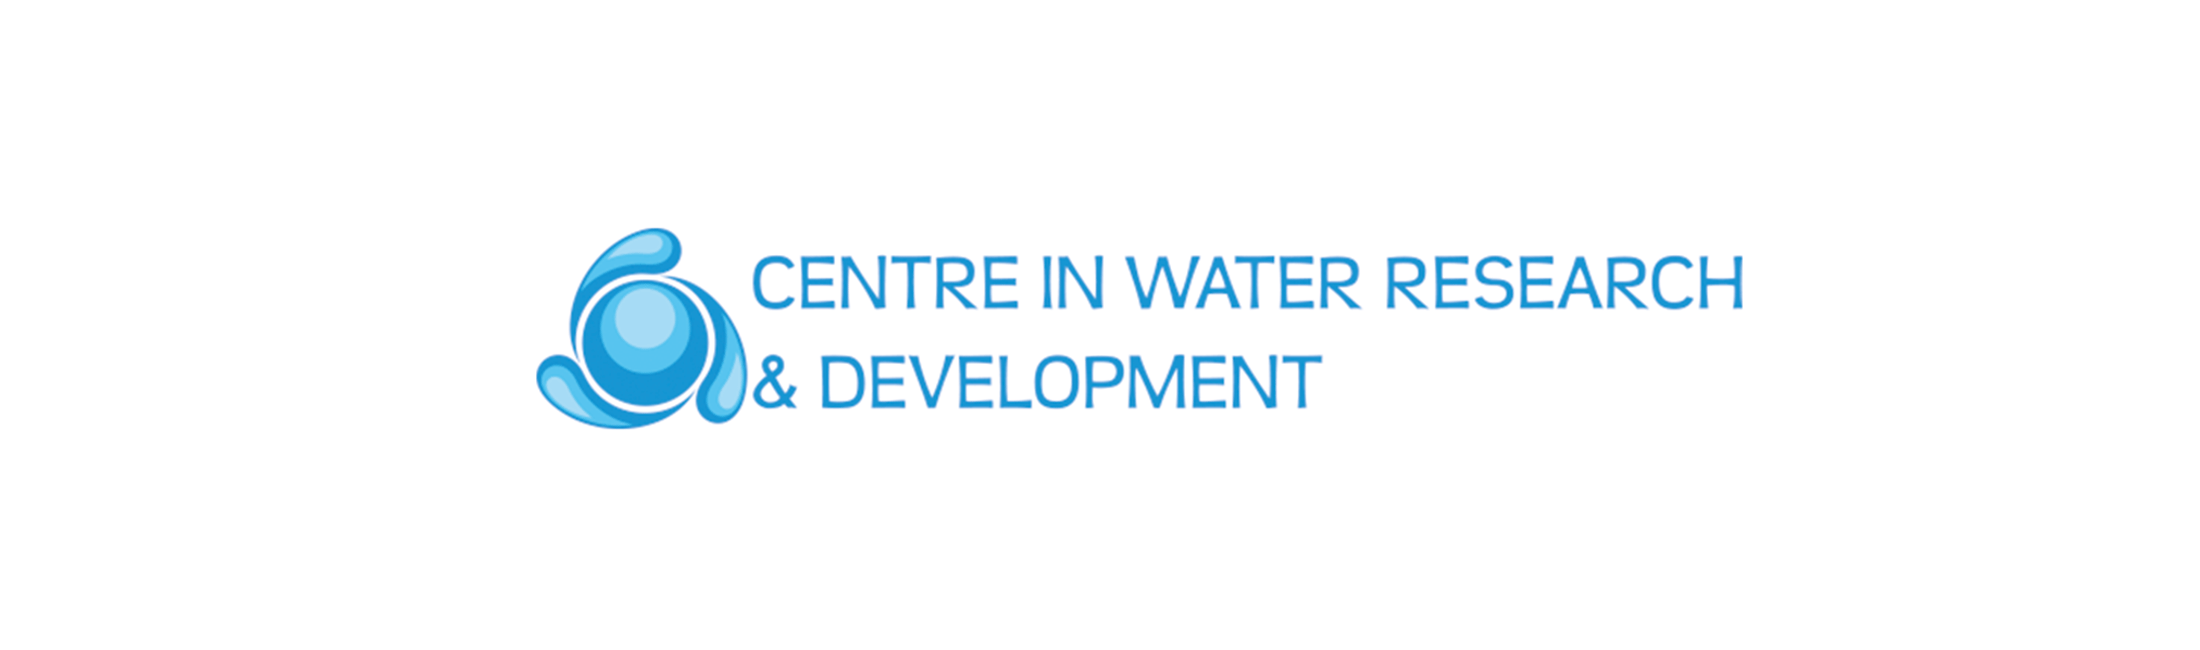 Centre in Water Research and Development logo